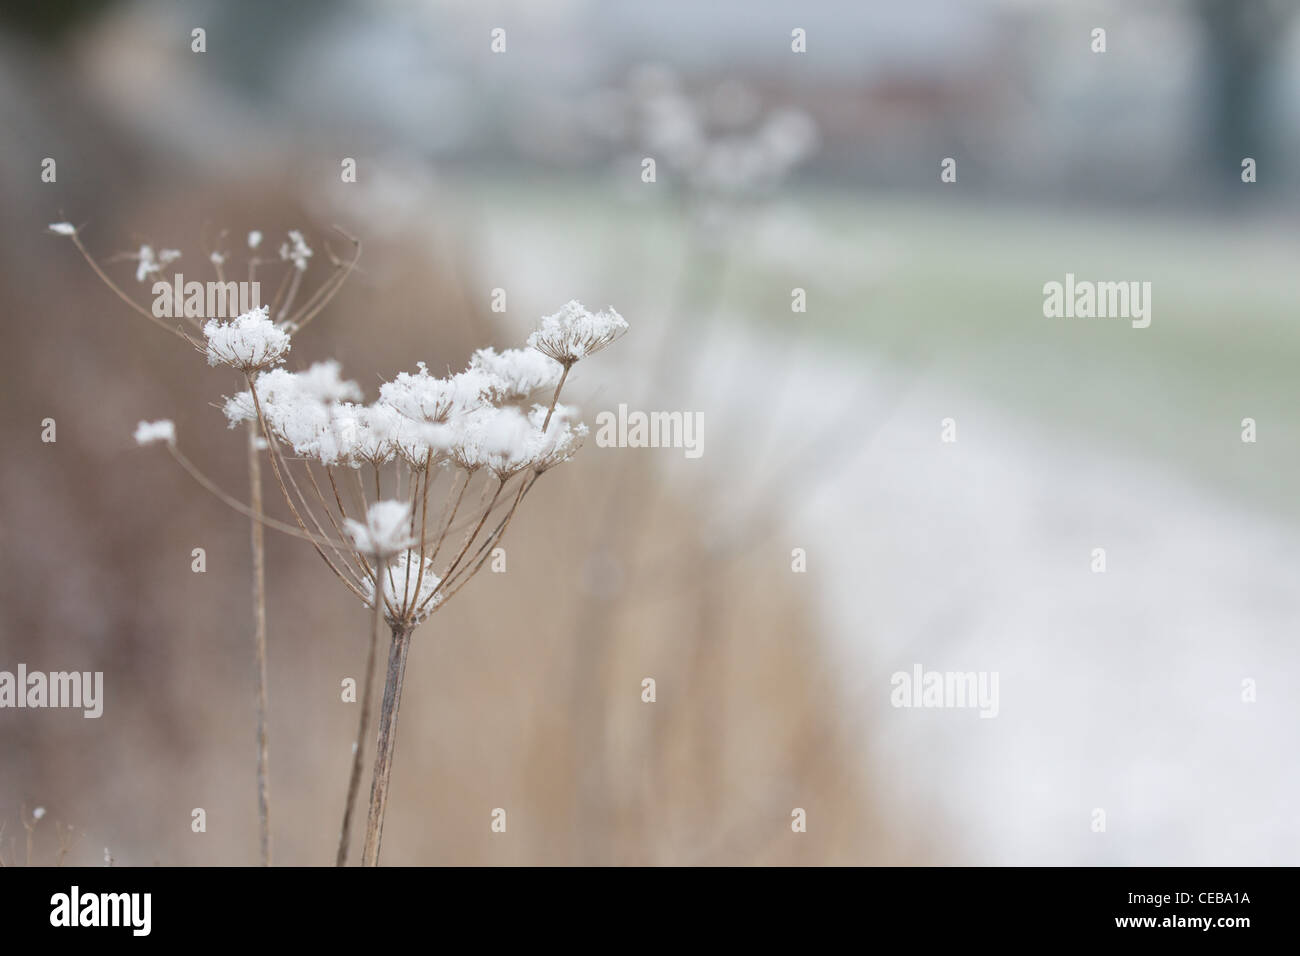 Snow flakes on dried plants - Stock Image